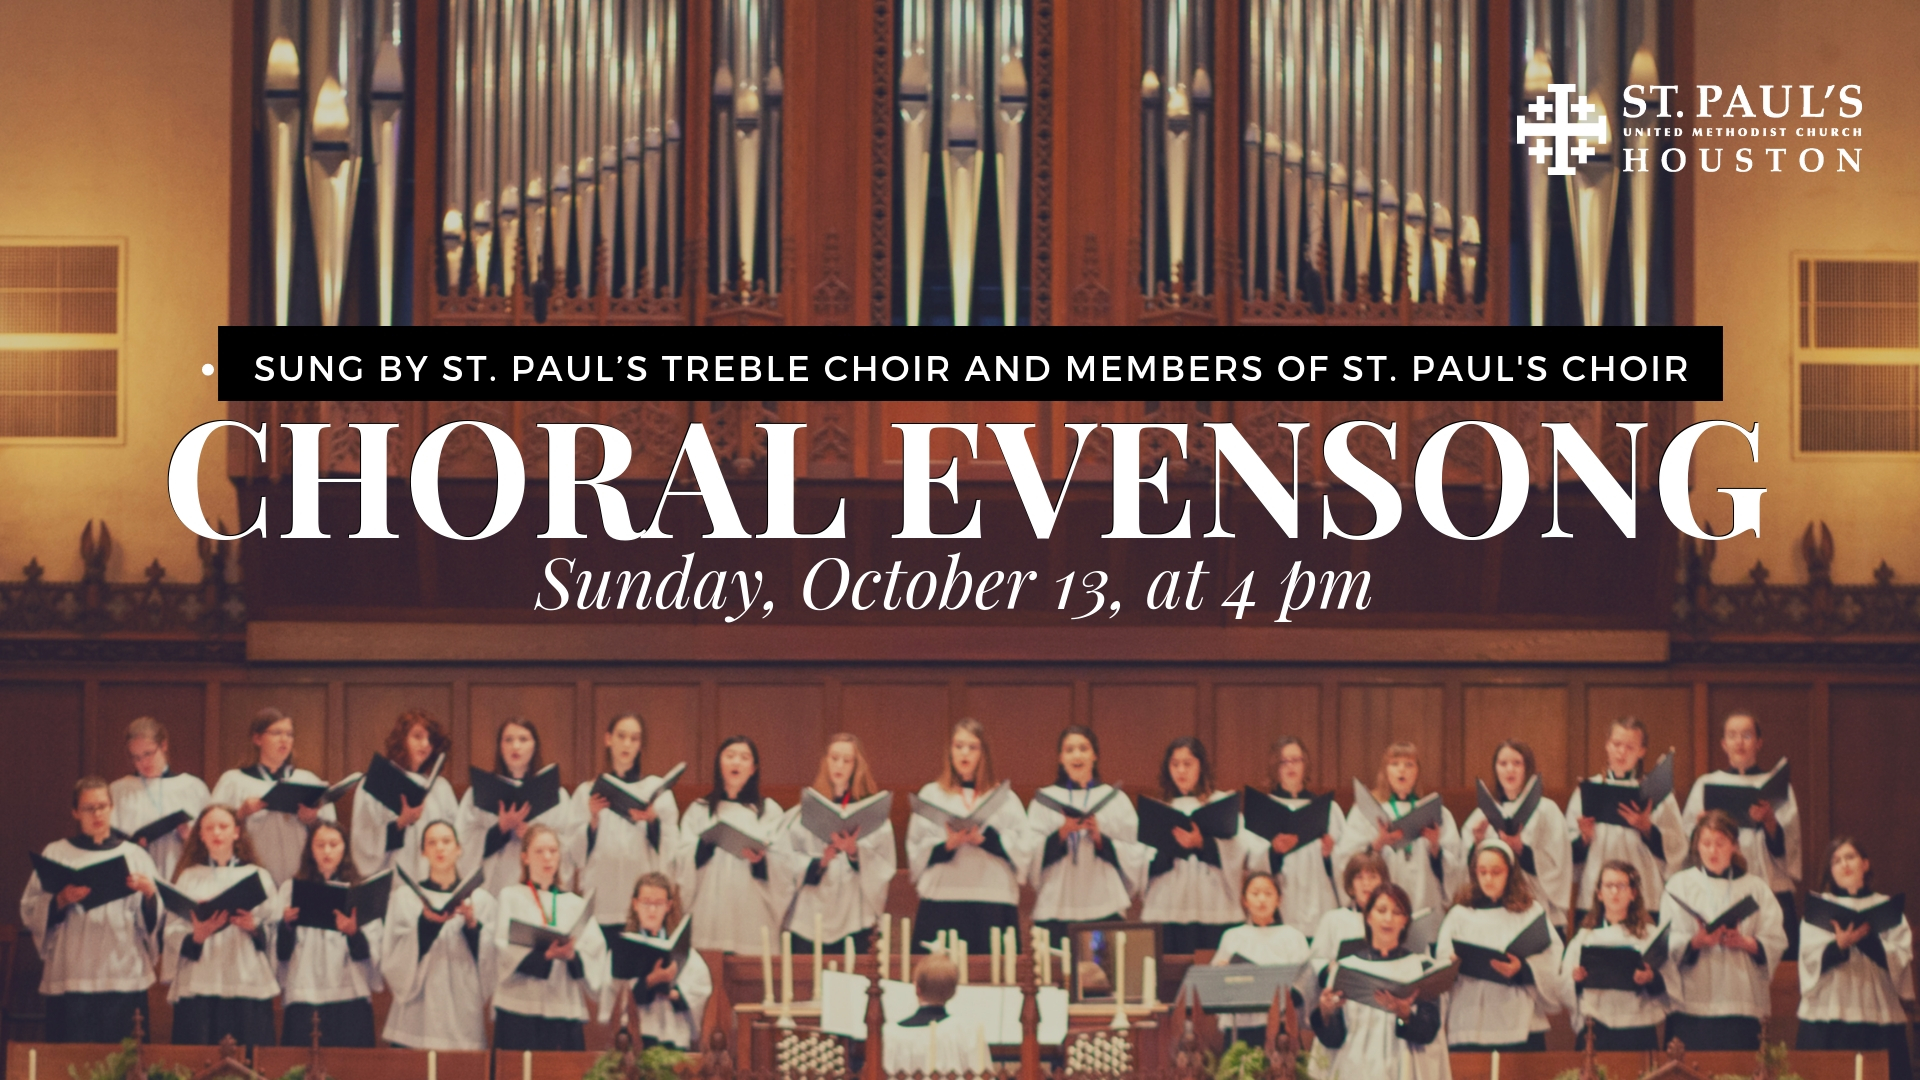 16x9 Choral Evensong - Oct 13 - Treble + ATB - corrected 09-05.jpg